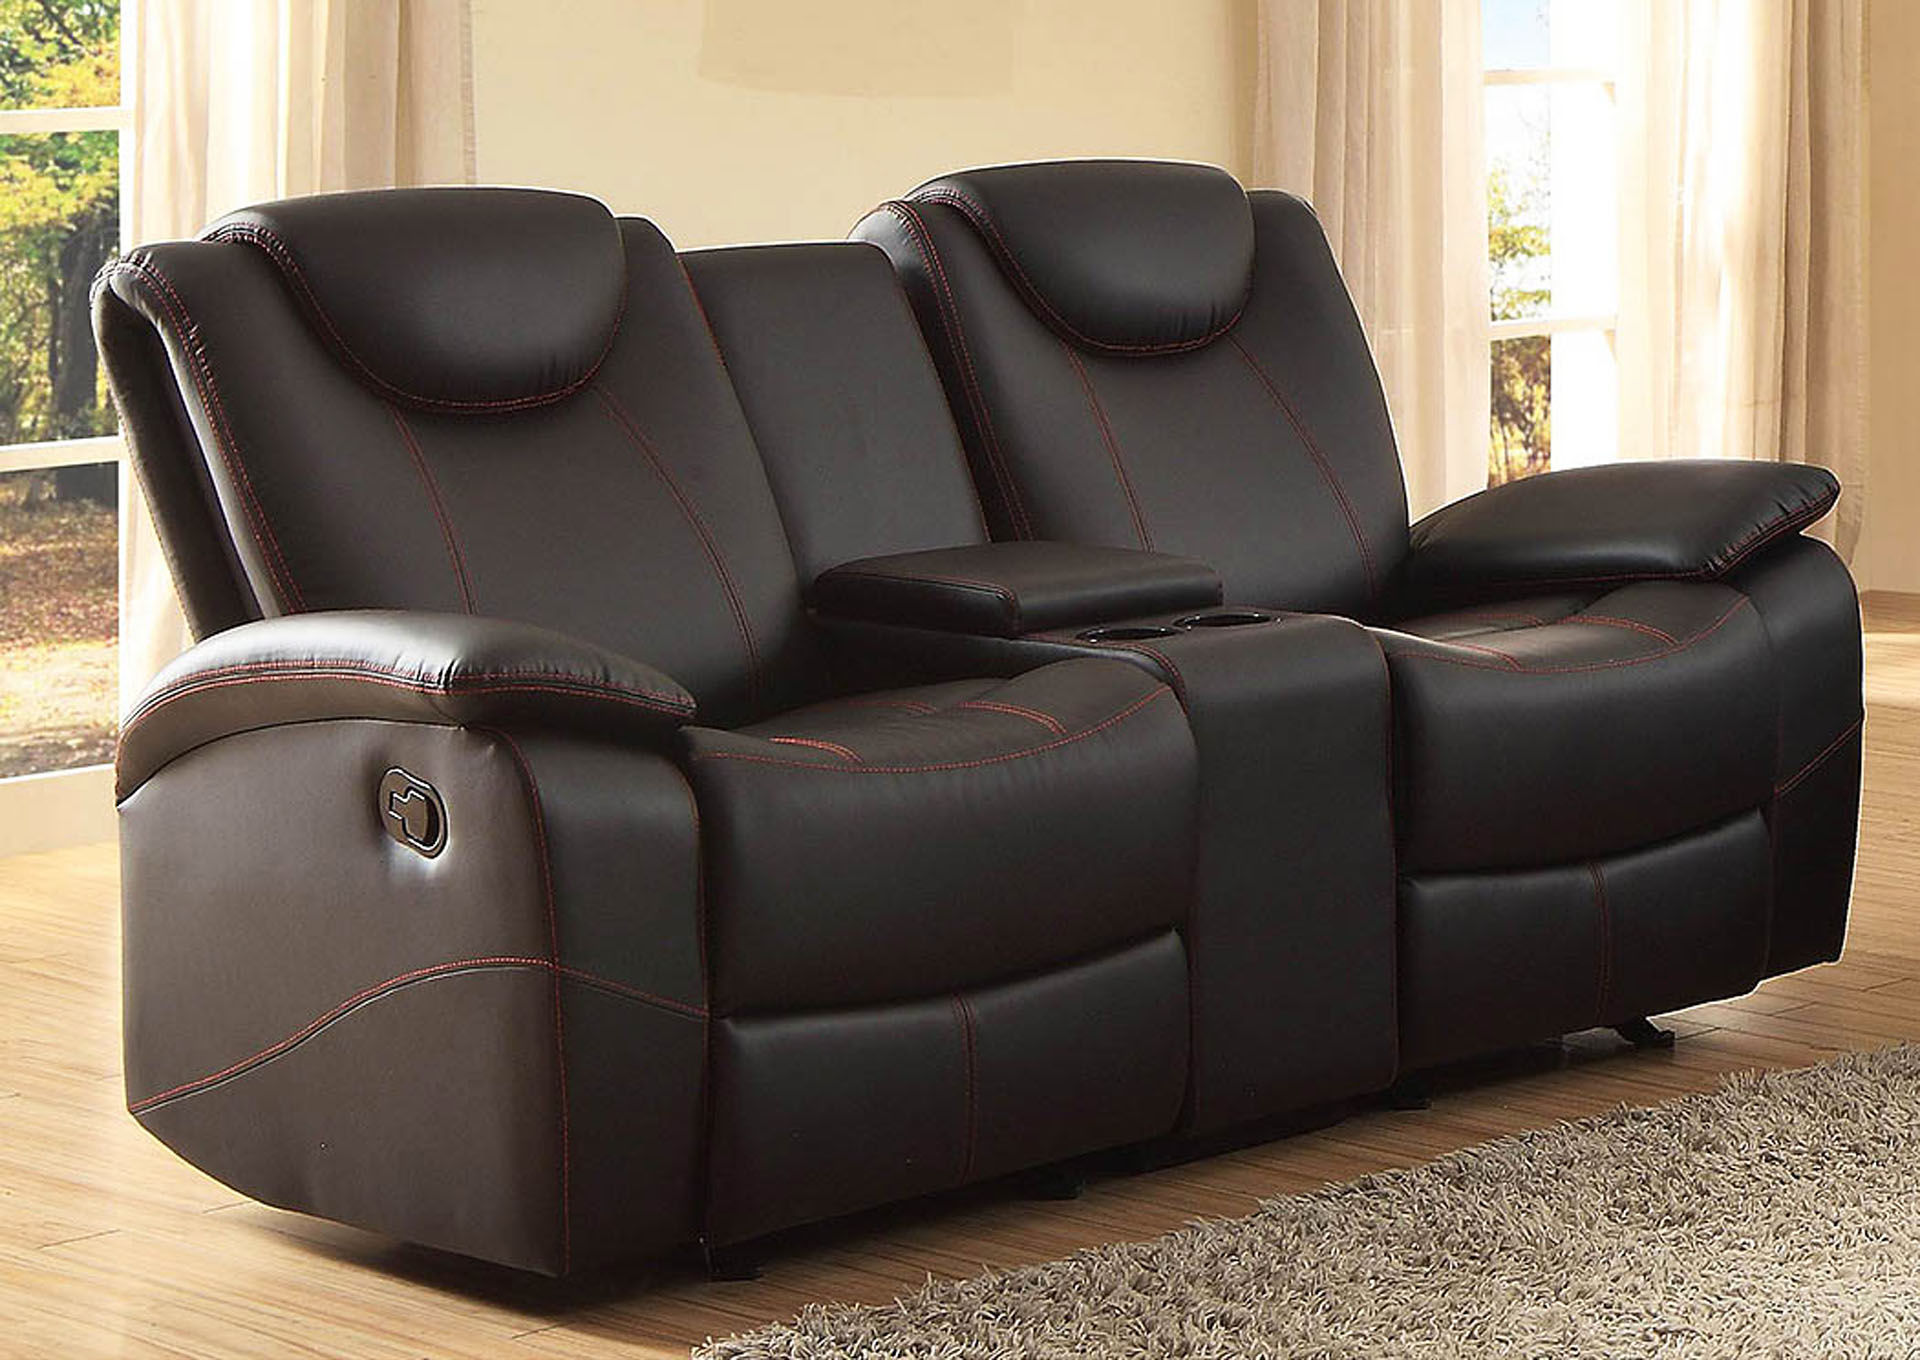 Talbot Black Double Glider Reclining Loveseat w/Center Console,Homelegance